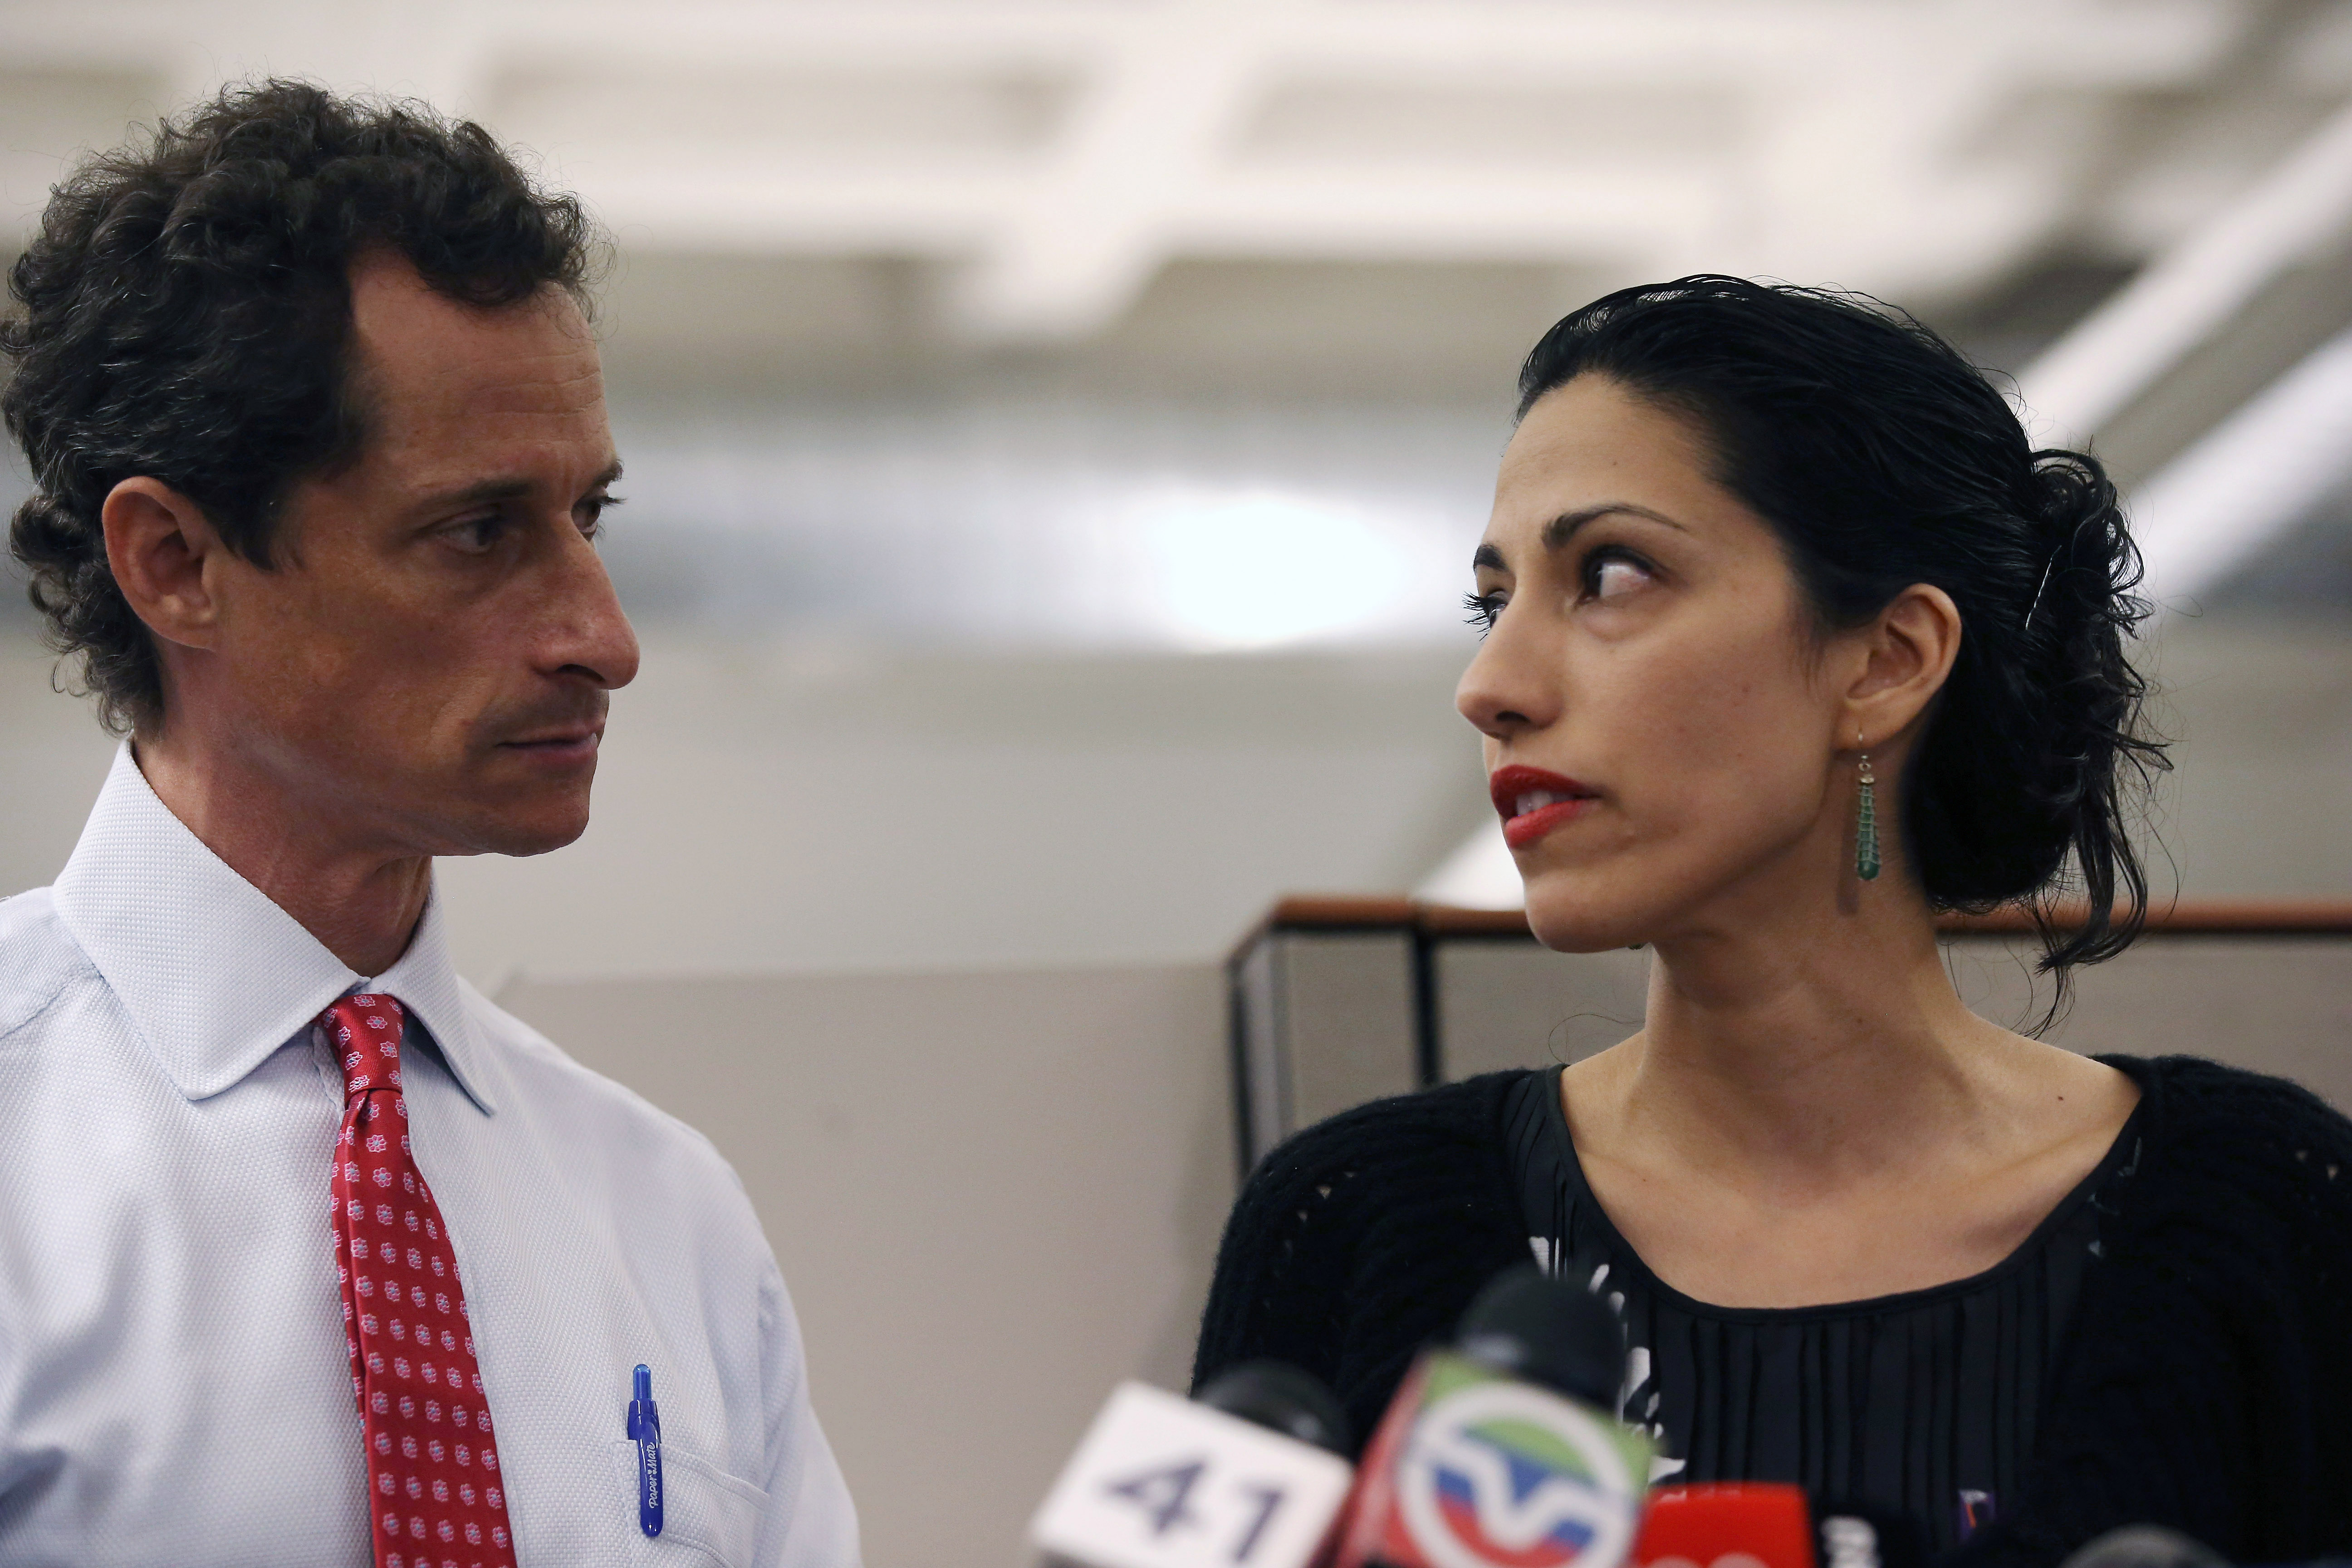 Anthony Weiner and his soon-to-be ex-wife, Huma Abedin, a top Hillary Clinton aide.